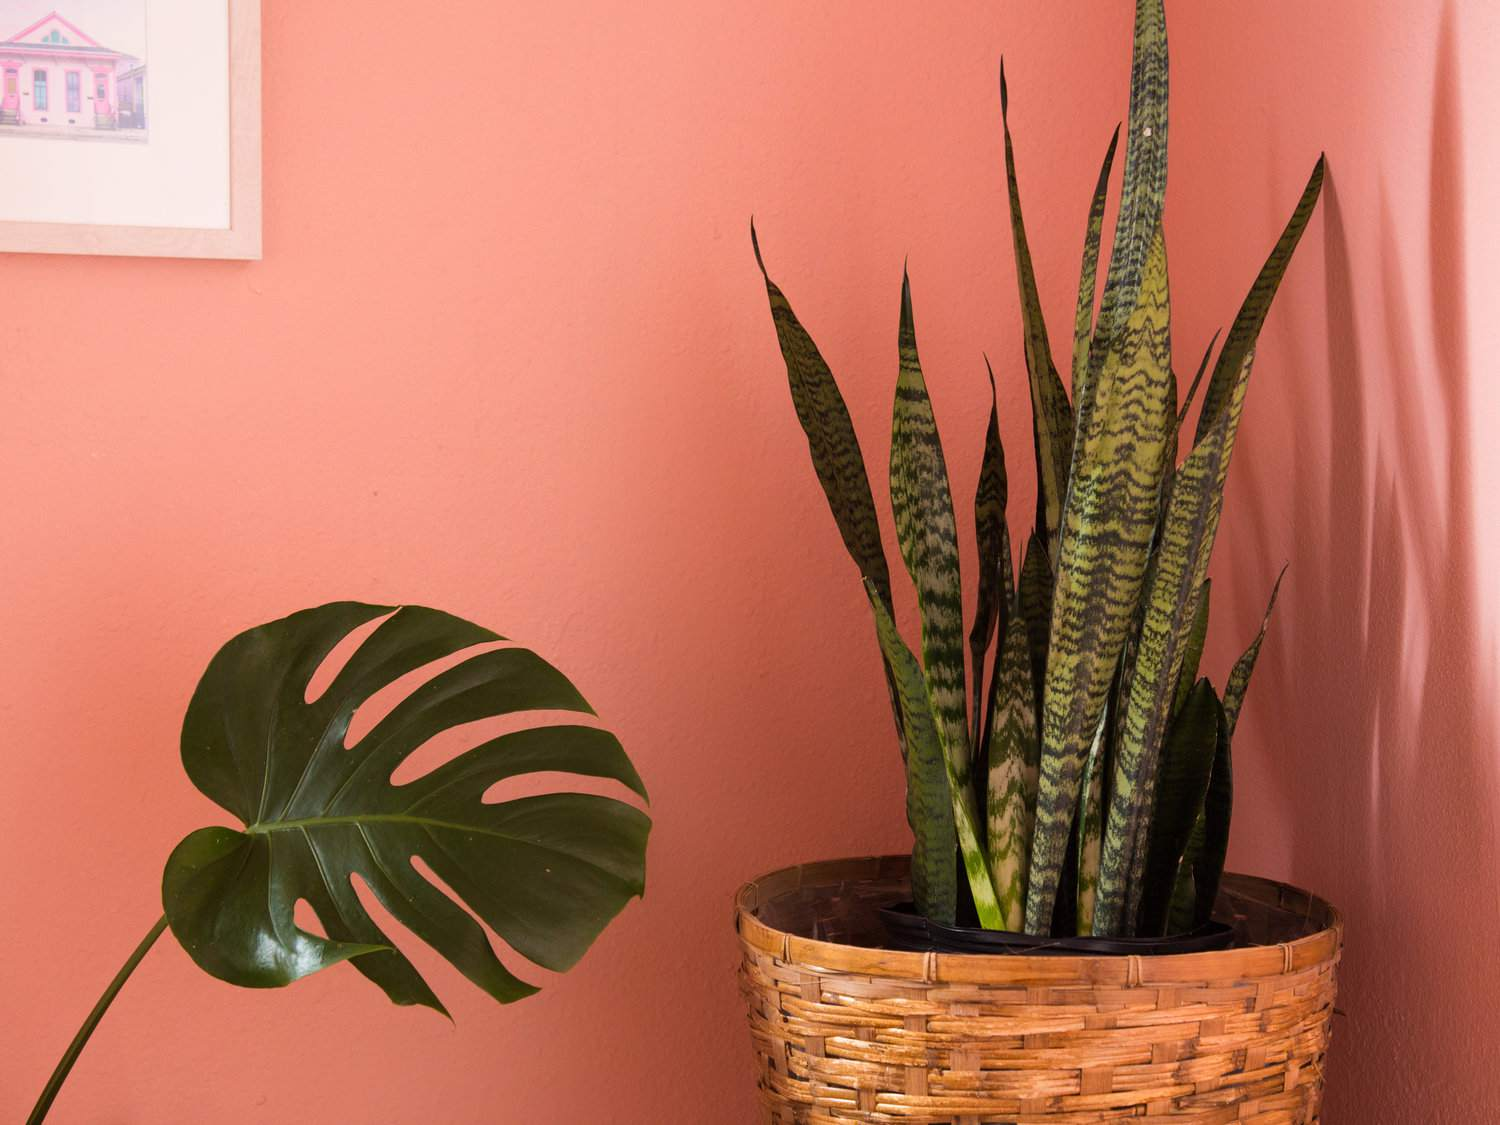 coral pink walls and houseplants